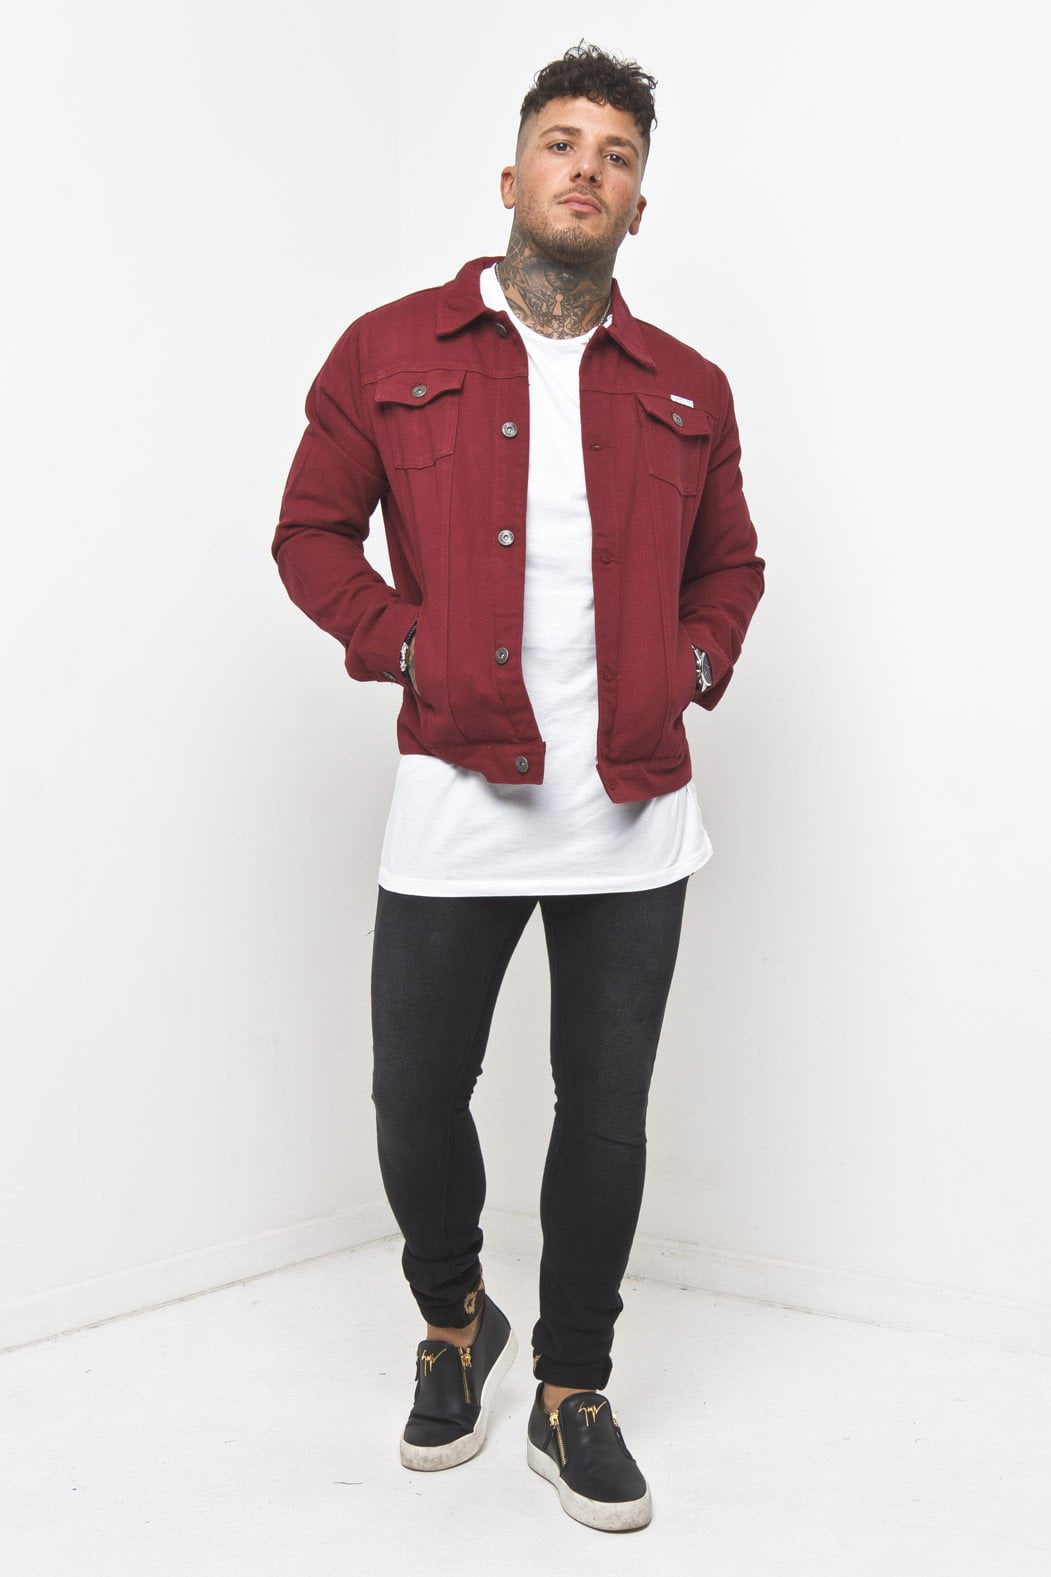 Norton Denim Jacket in Red - Liquor N Poker  Liquor N Poker